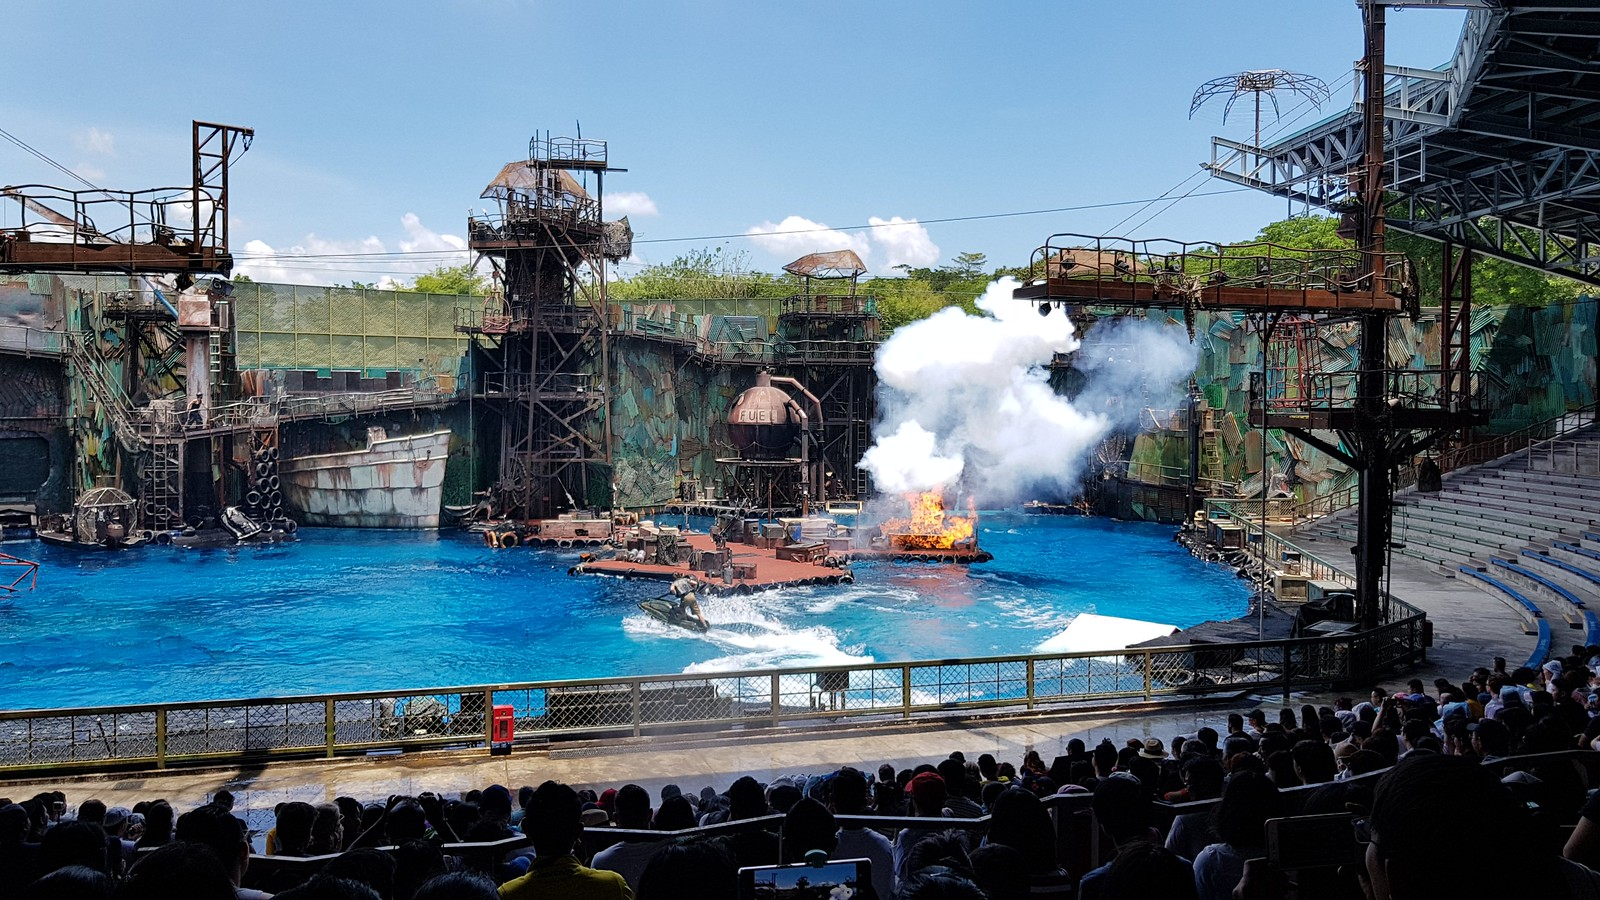 26. Waterworld